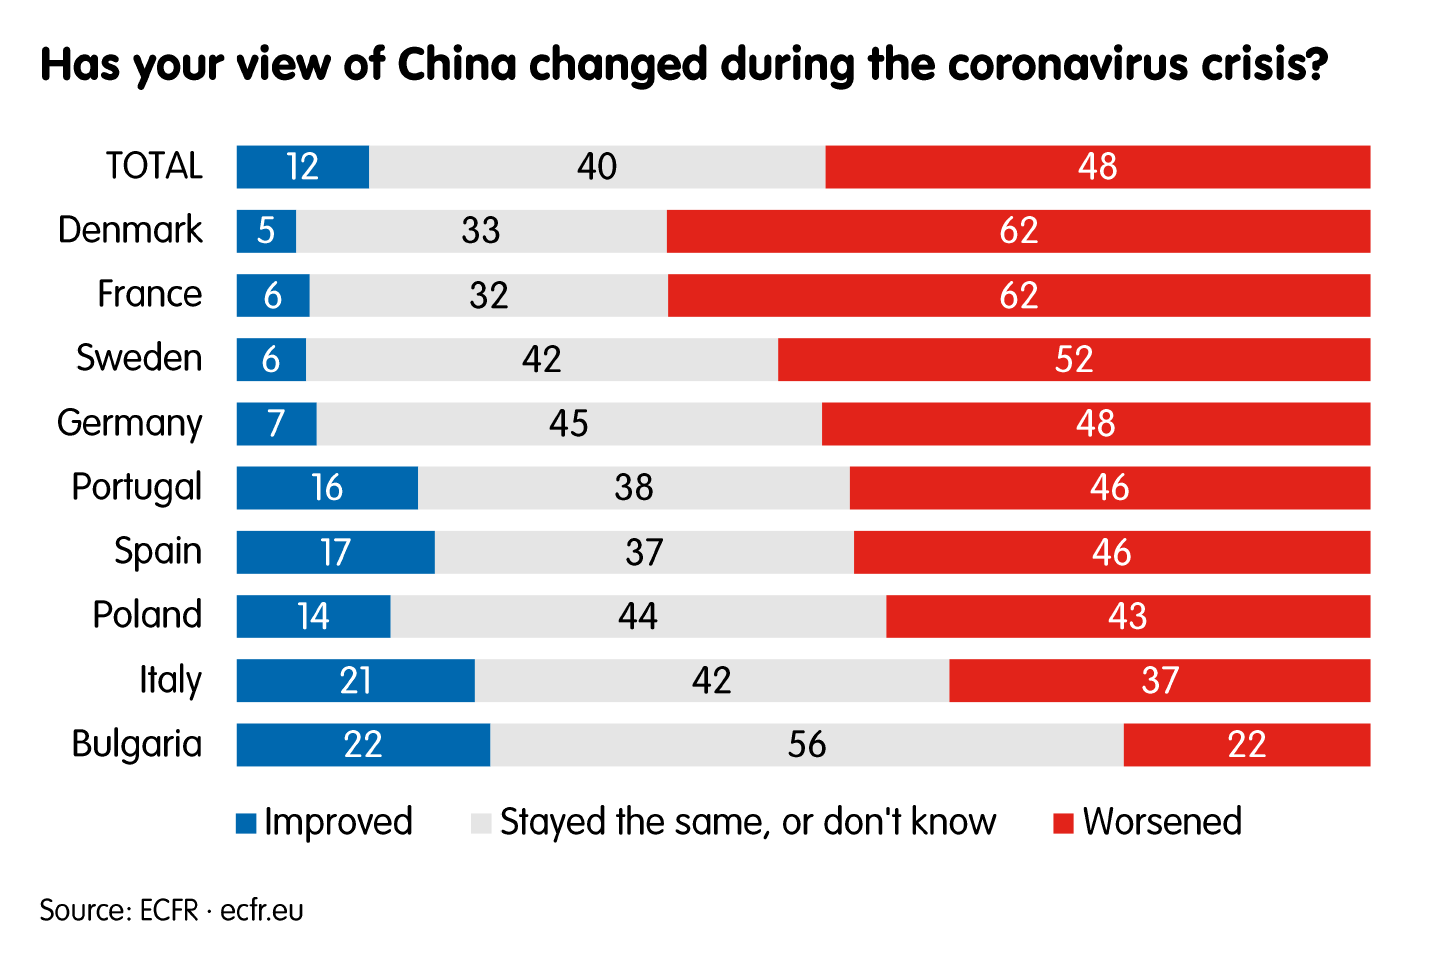 Has your view of China changed during the coronavirus crisis?